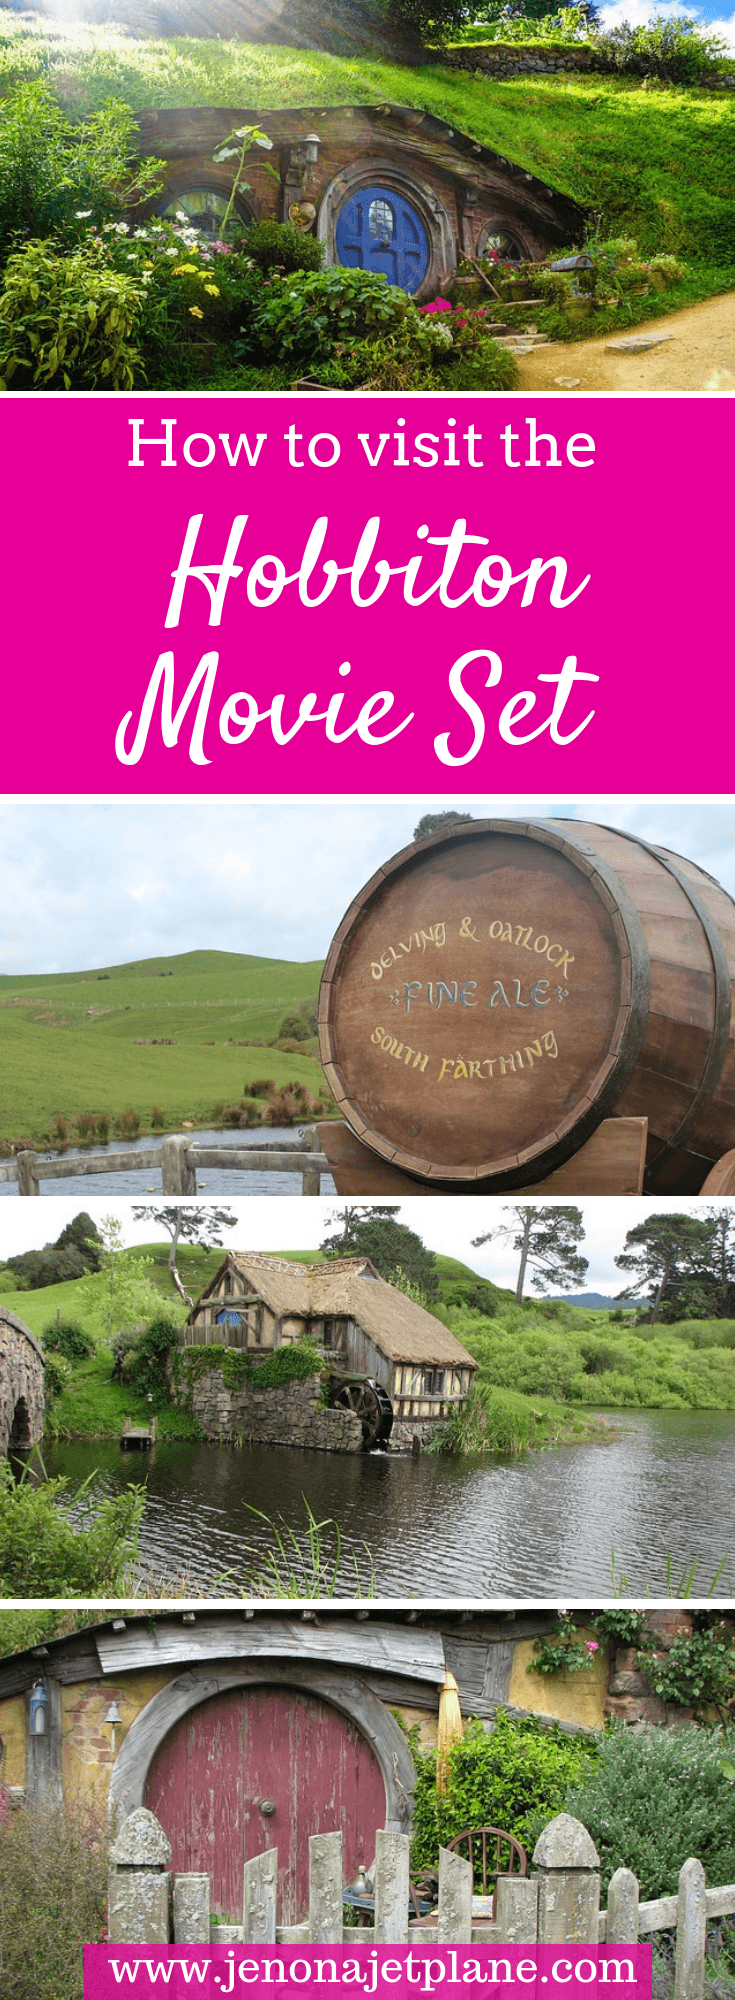 Want to visit Hobbiton Village, the Lord of the Rings movie set in New Zealand? Here's everything you need to know, from ticket prices to the best time of day to go. Save to your travel board for future reference! #newzealand #newzealandnorthisland #newzealandtravel #hobbiton #hobbitonnewzealand #hobbitontheshire #bucketlisttravel